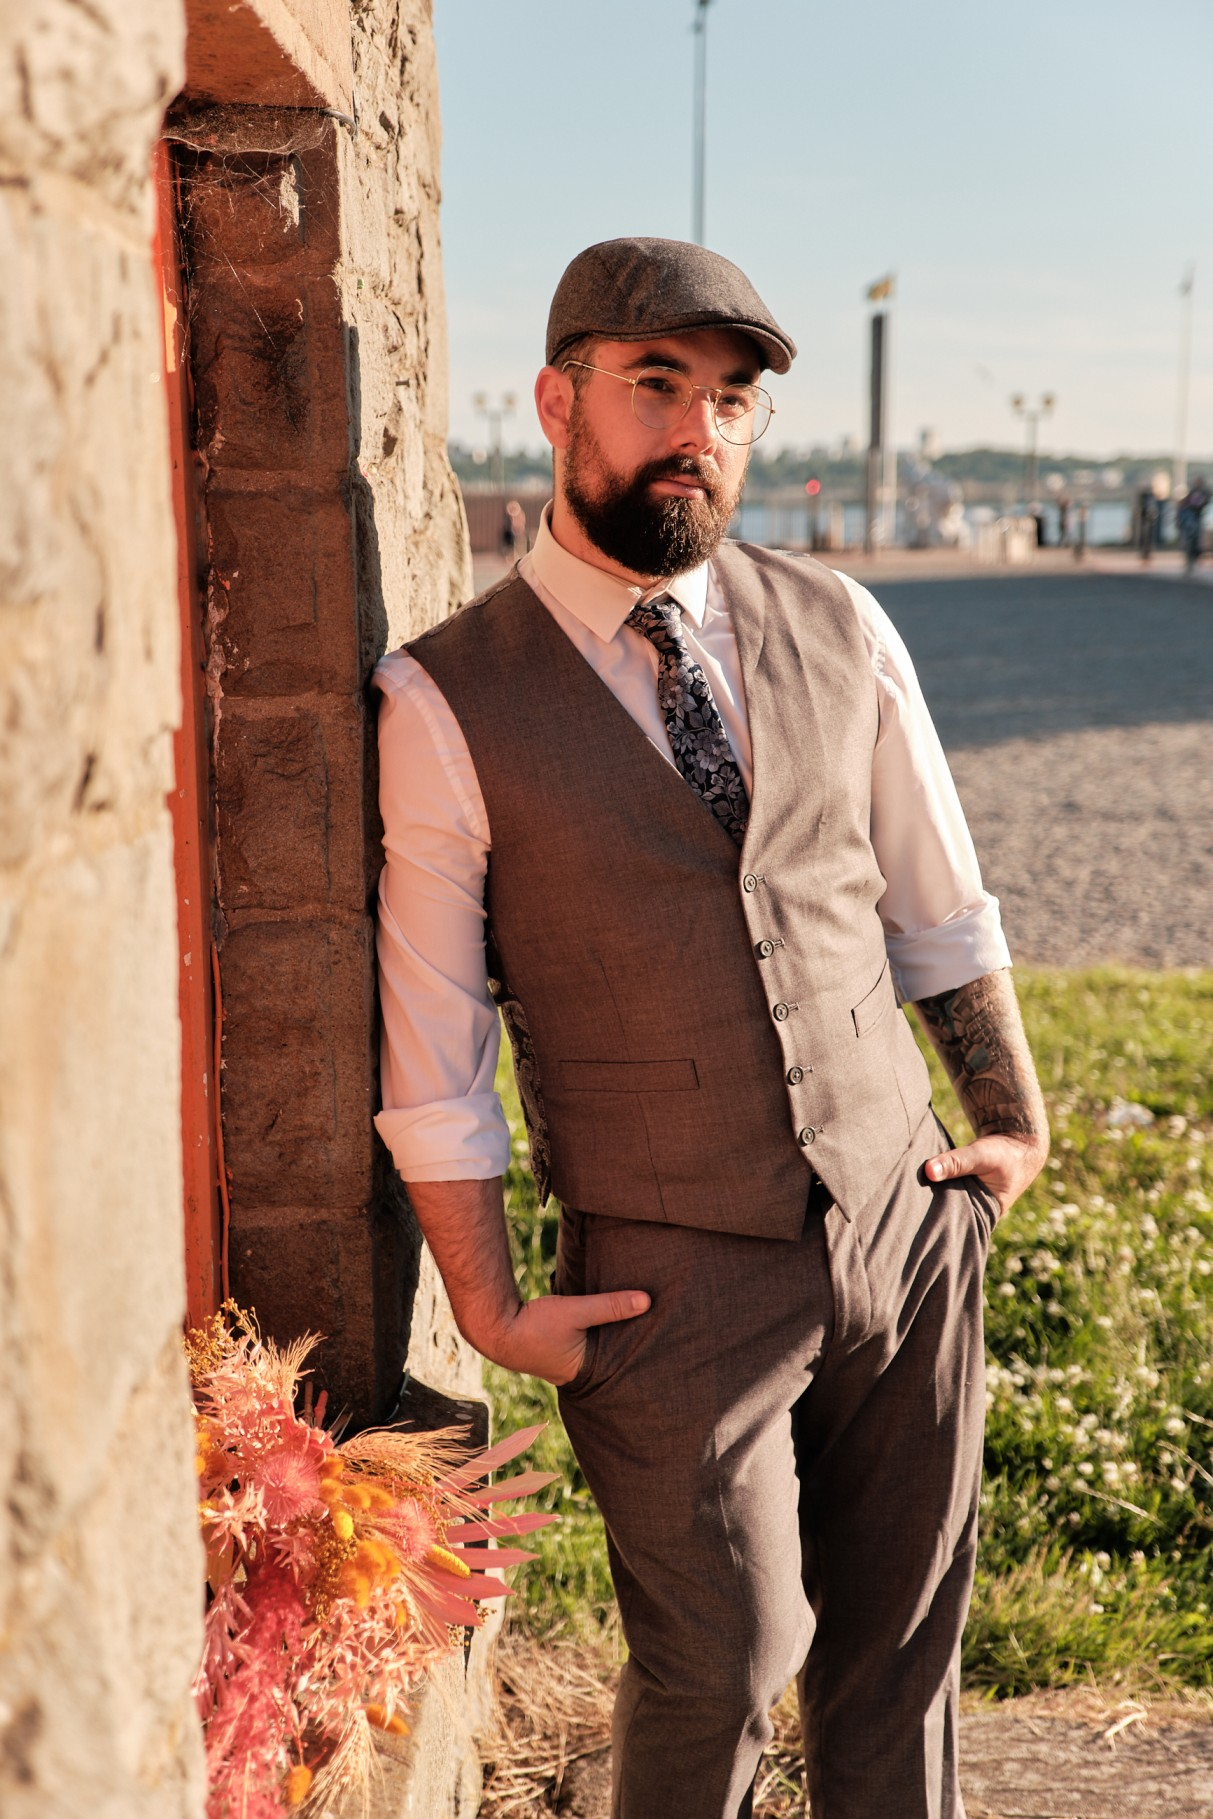 city elopement- cardiff bay wedding- wales elopement- urban elopement - cardiff wedding - colourful summer wedding- groom in waistcoat and flat cap